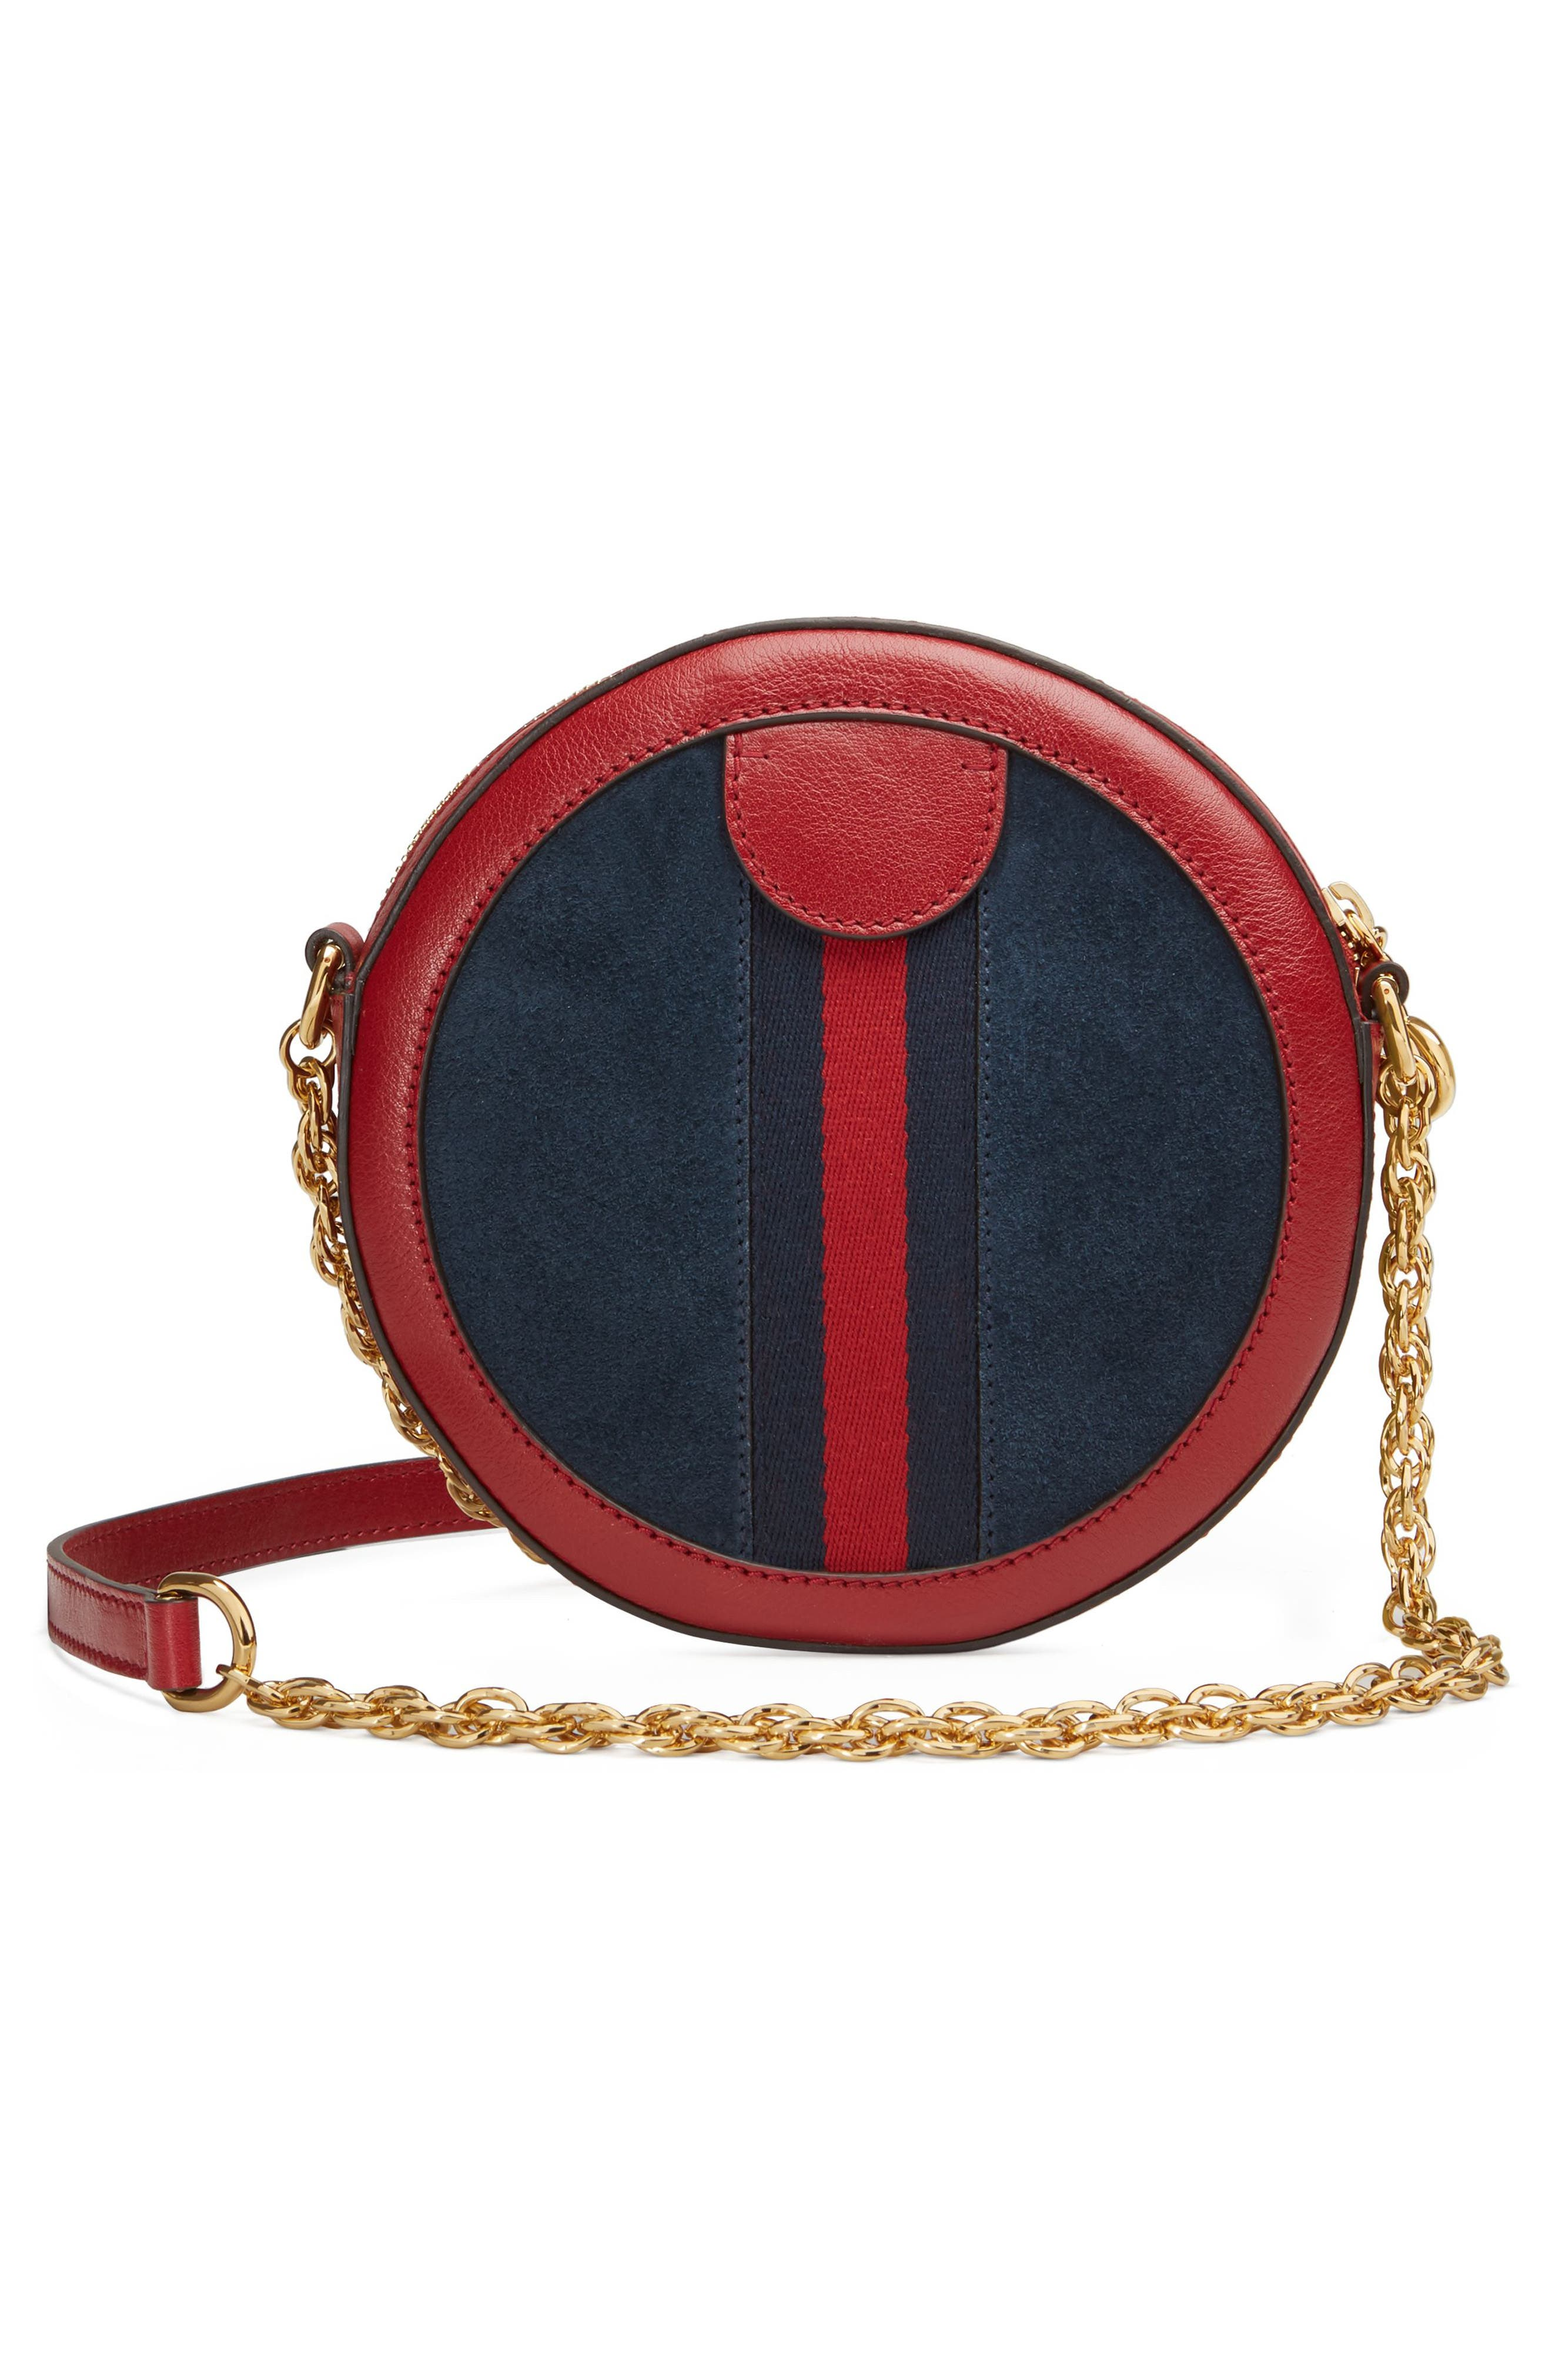 Ophidia Small Suede & Leather Circle Crossbody Bag,                             Alternate thumbnail 2, color,                             NEW BLU/ ROMANTIC CERISE